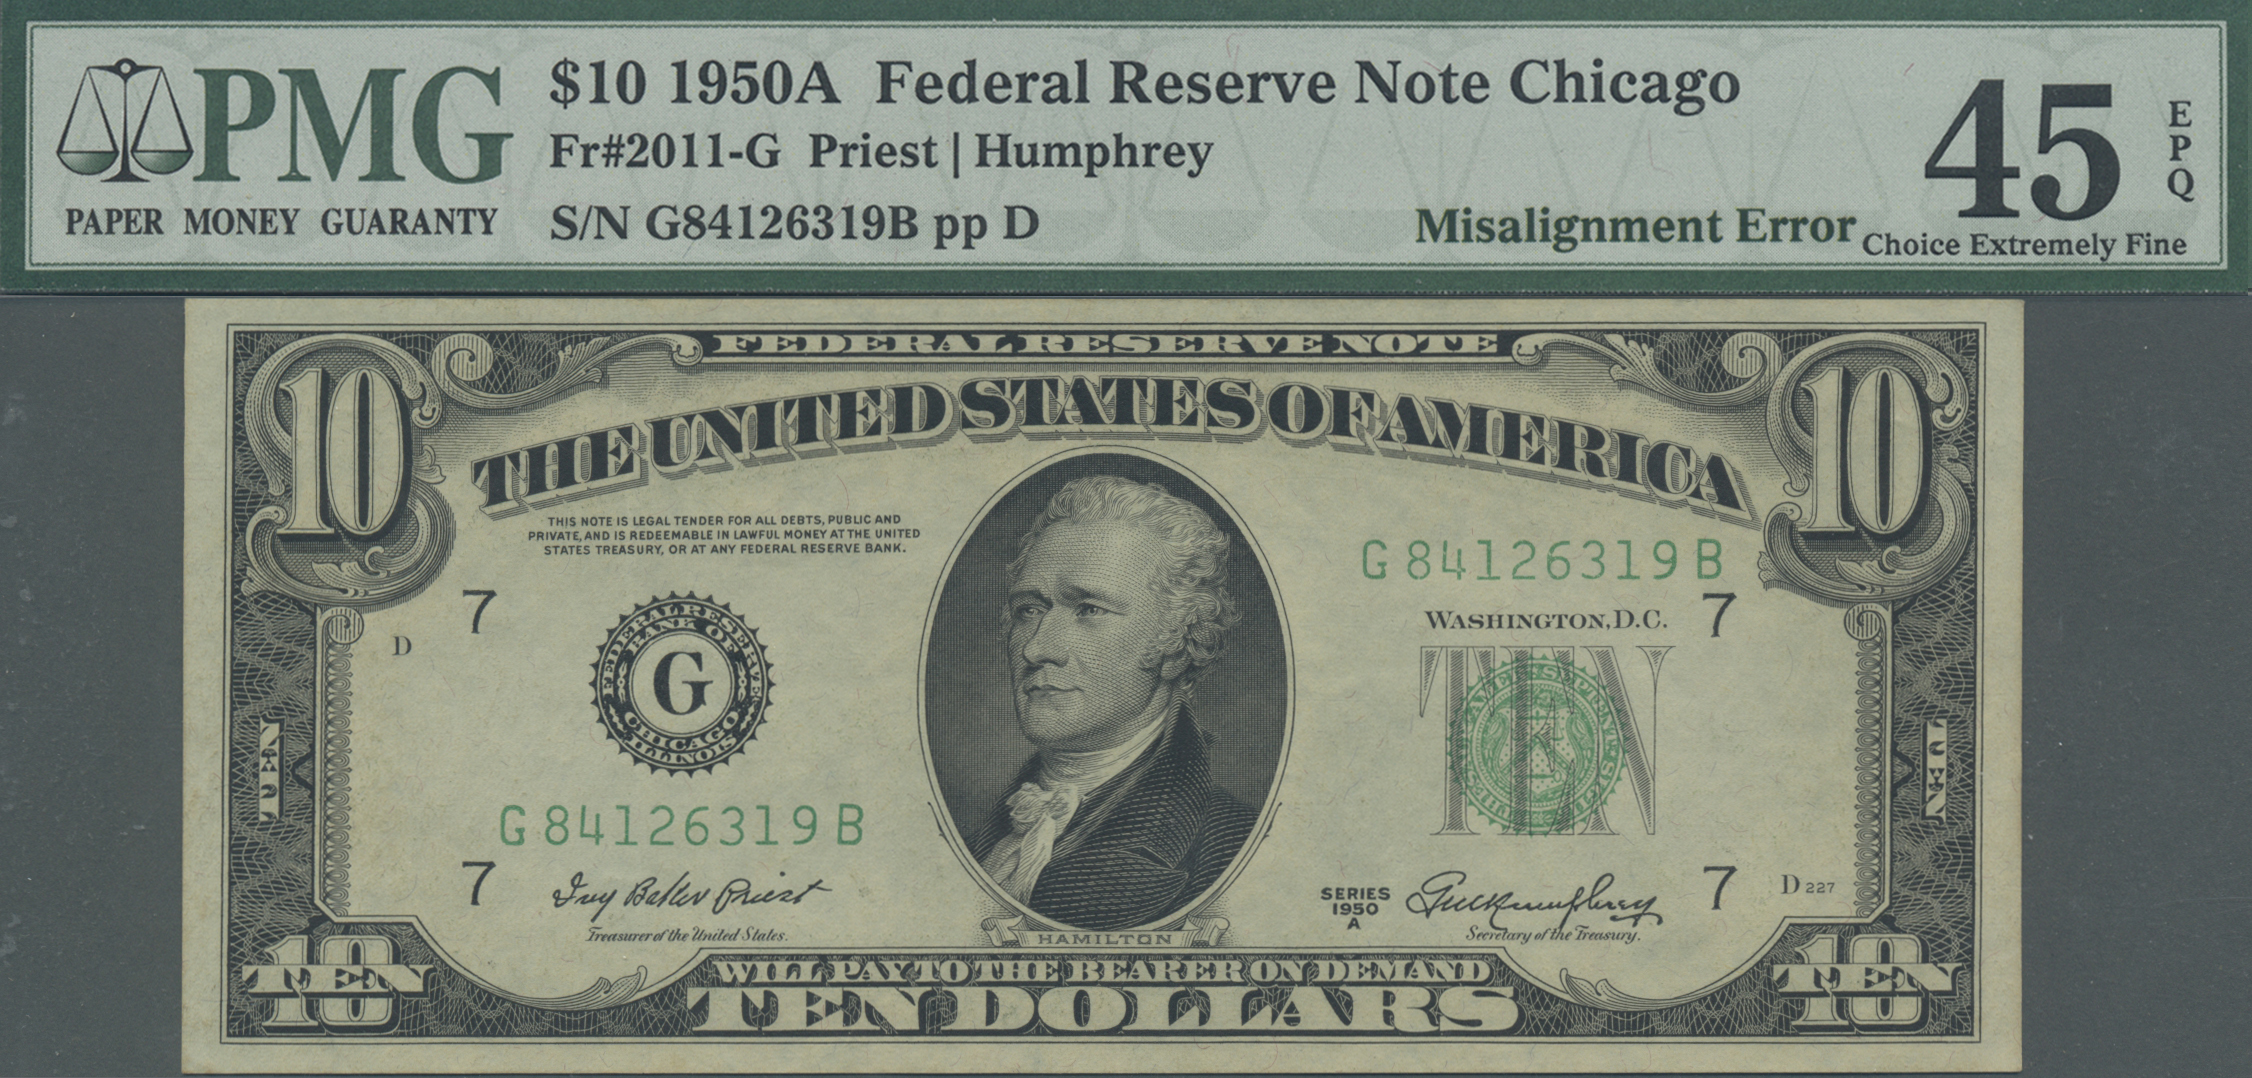 Lot 00908 - United States of America | Banknoten  -  Auktionshaus Christoph Gärtner GmbH & Co. KG Sale #48 The Banknotes